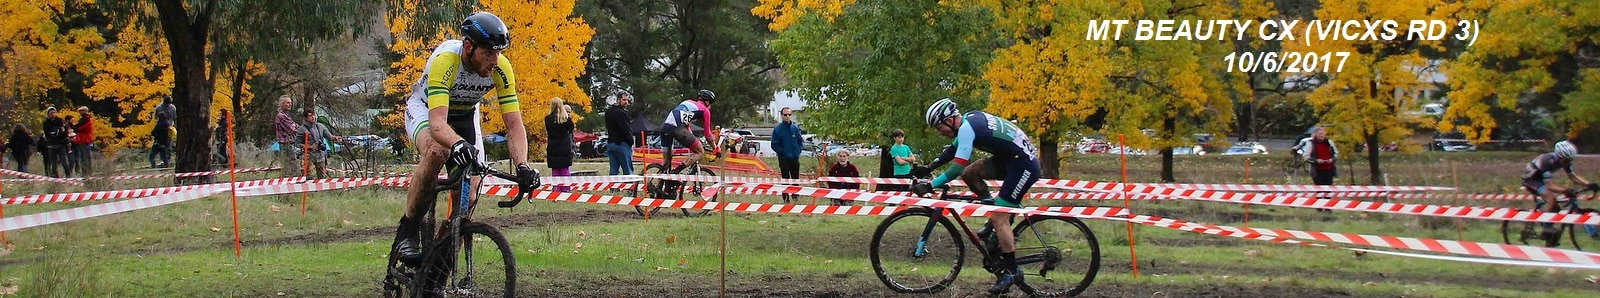 MTB CX 2017 pvdp 1600x298 inc Event Name and Date